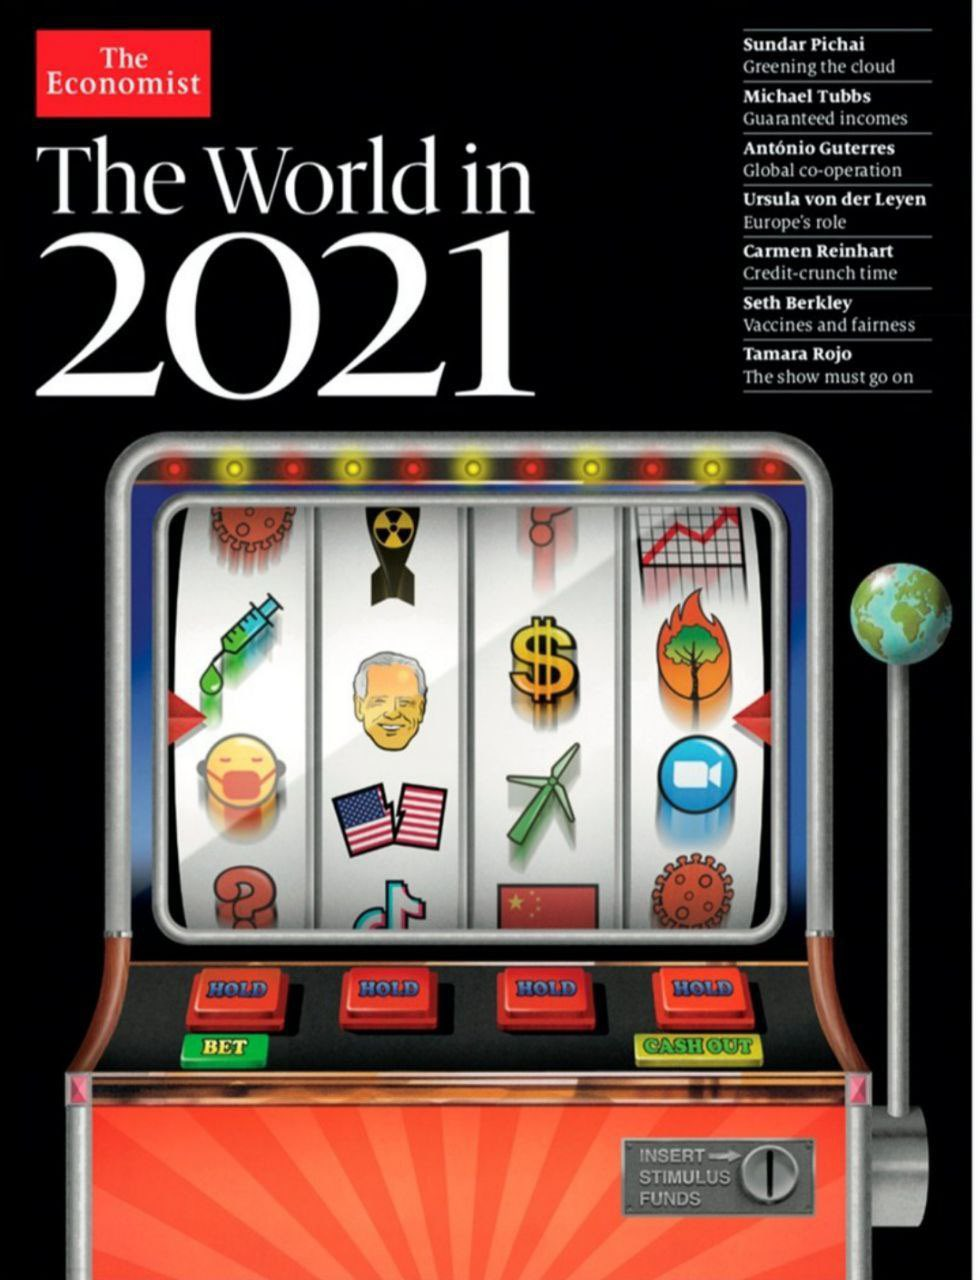 What The Economist predicted for 2021 and for what purpose 99